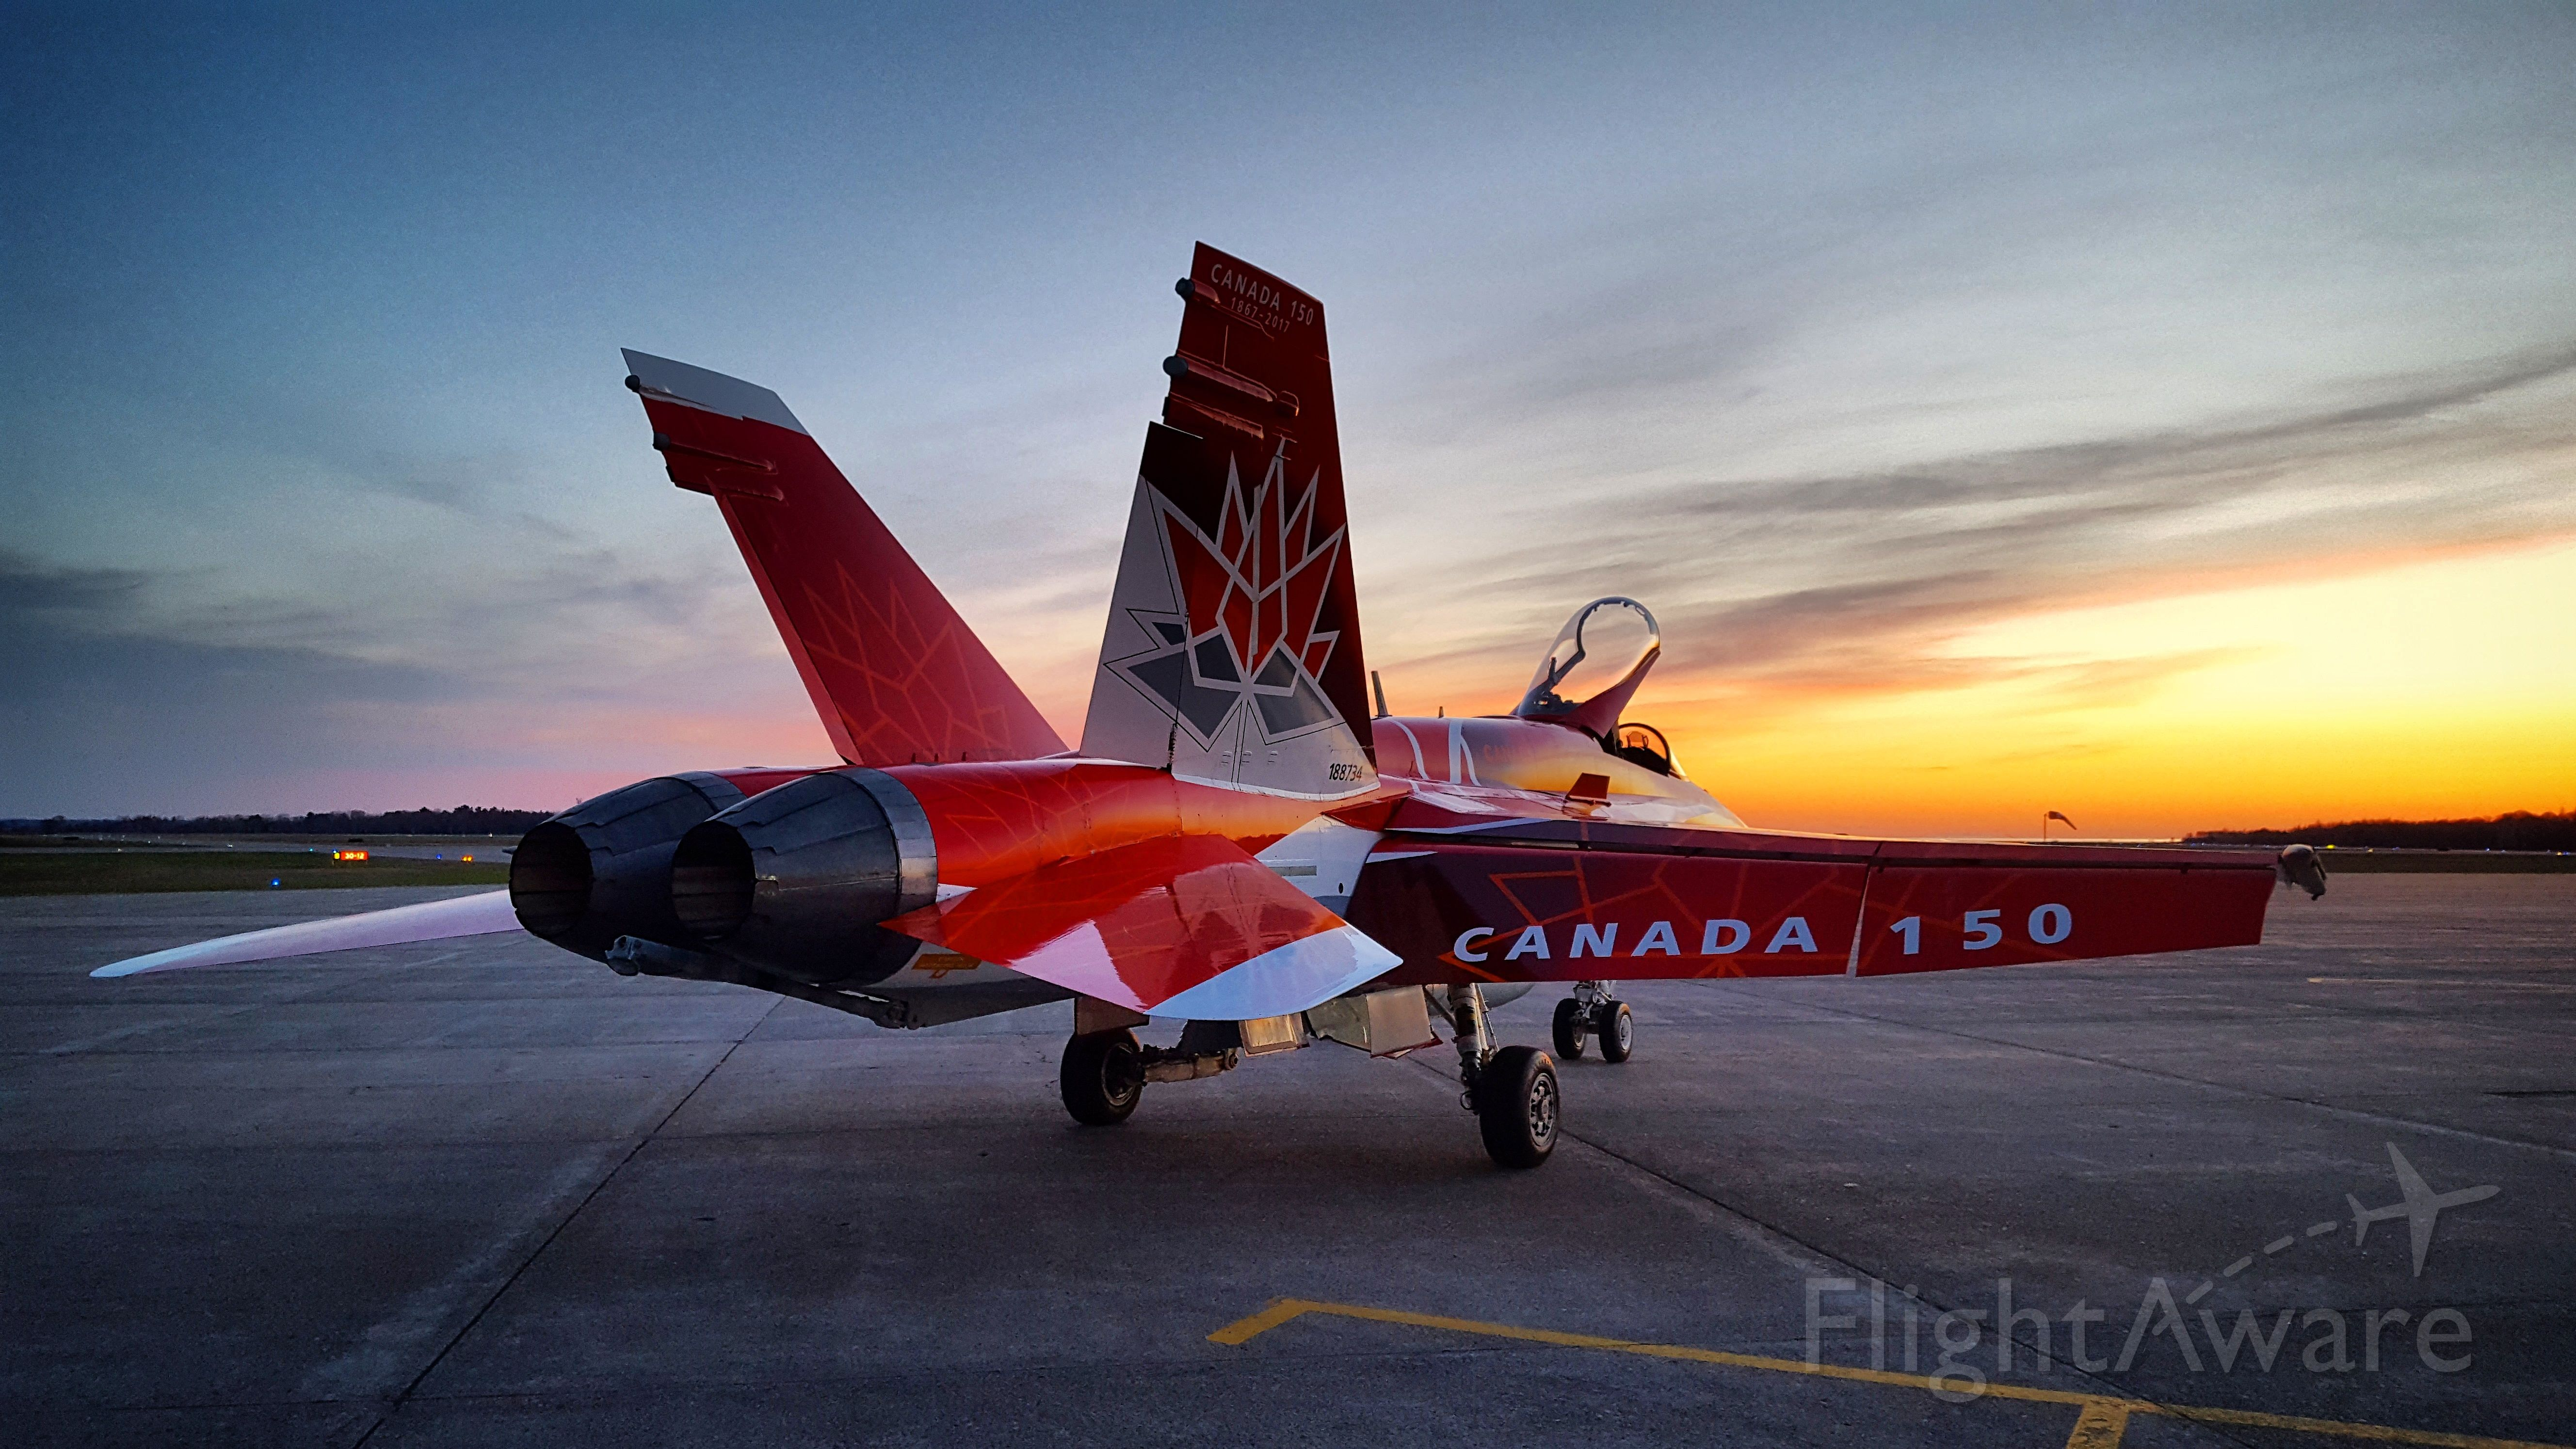 McDonnell Douglas FA-18 Hornet (18-8734) - CF-18 Hornet at sunset, painted to celebrate Canadas 150th Birthday